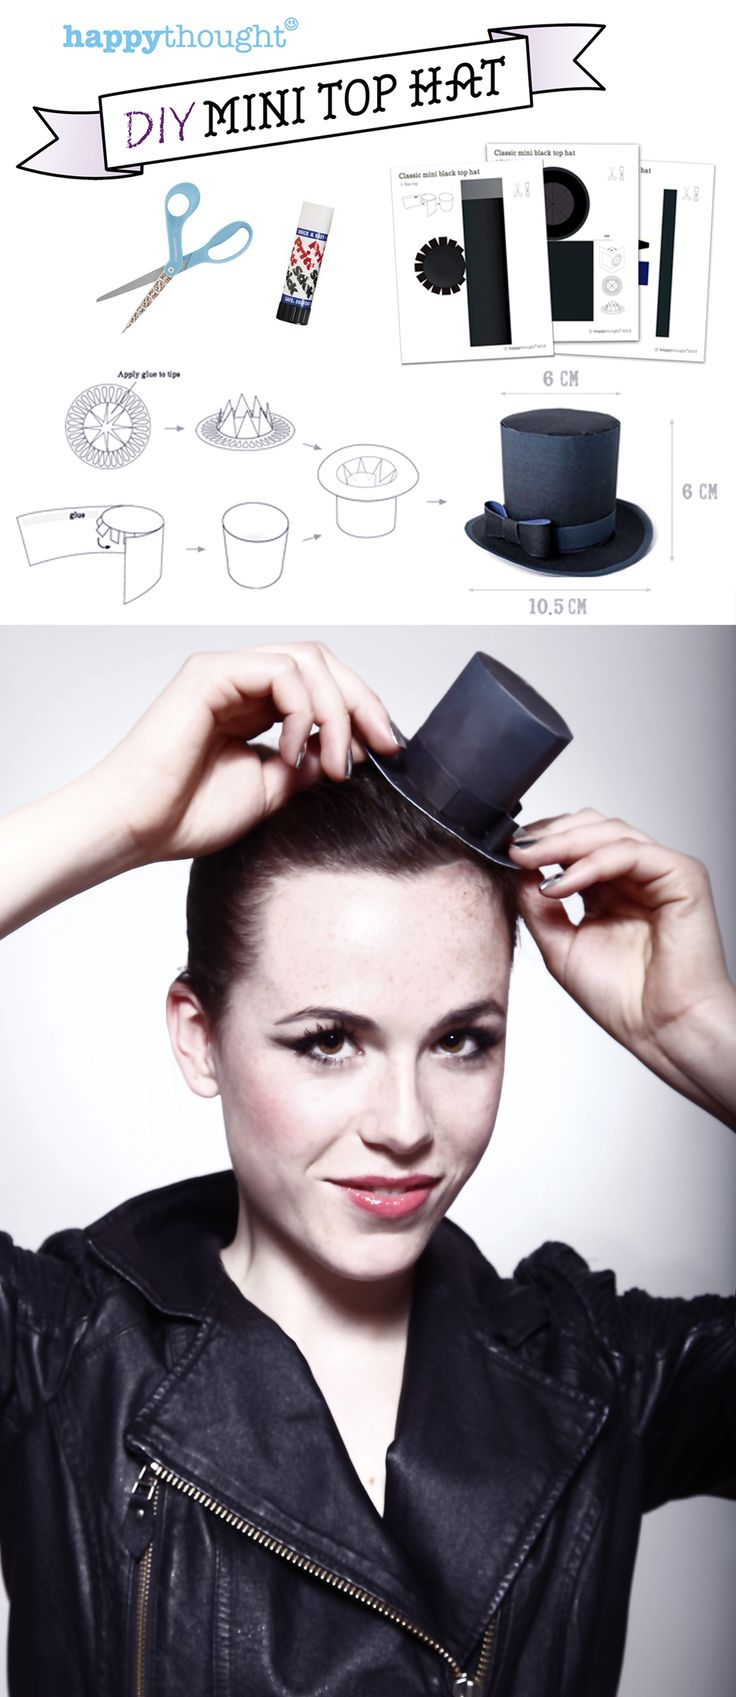 DIY Mini Top Hat made of paper! Printable templates and easy step-by-step instructions. https://happythought.co.uk/craft-ideas/printables/mini-top-hats/mini-paper-top-hats